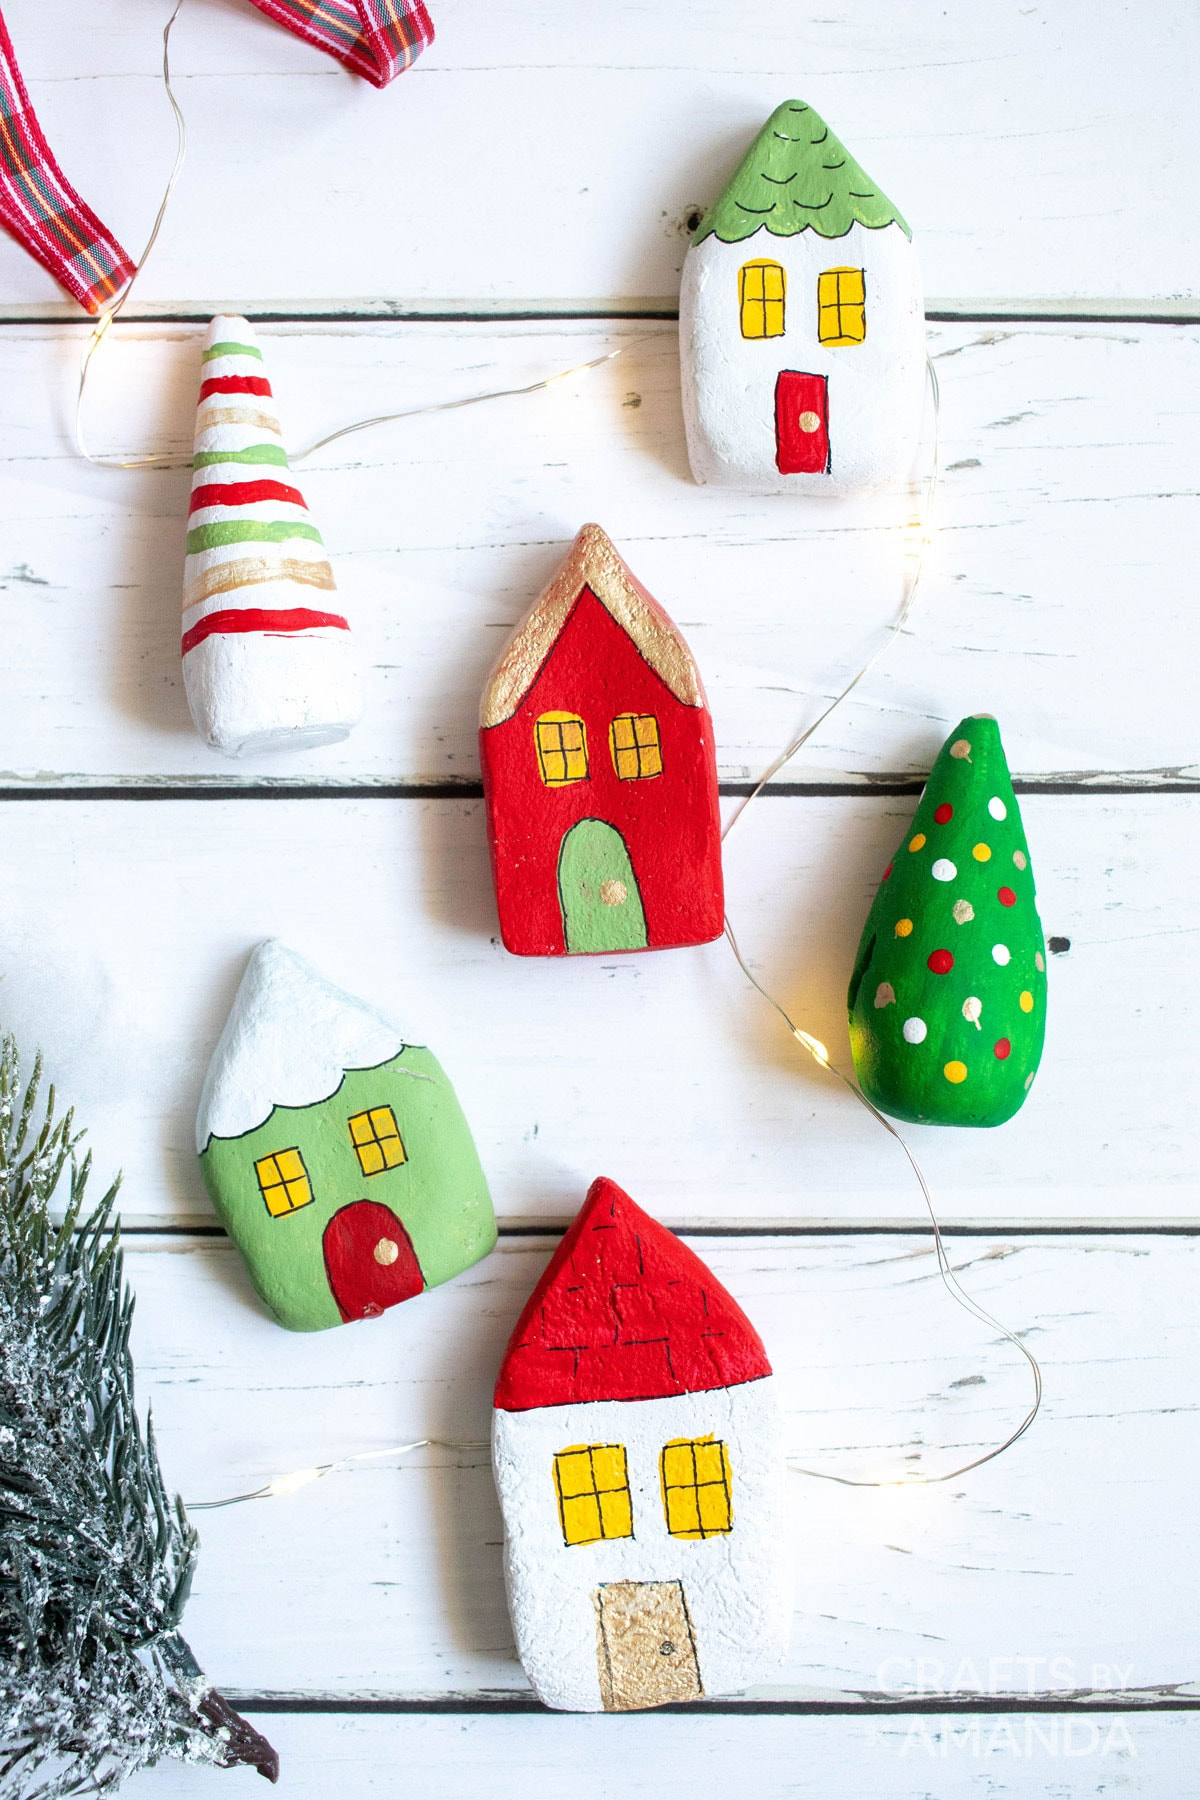 painted salt dough houses and trees